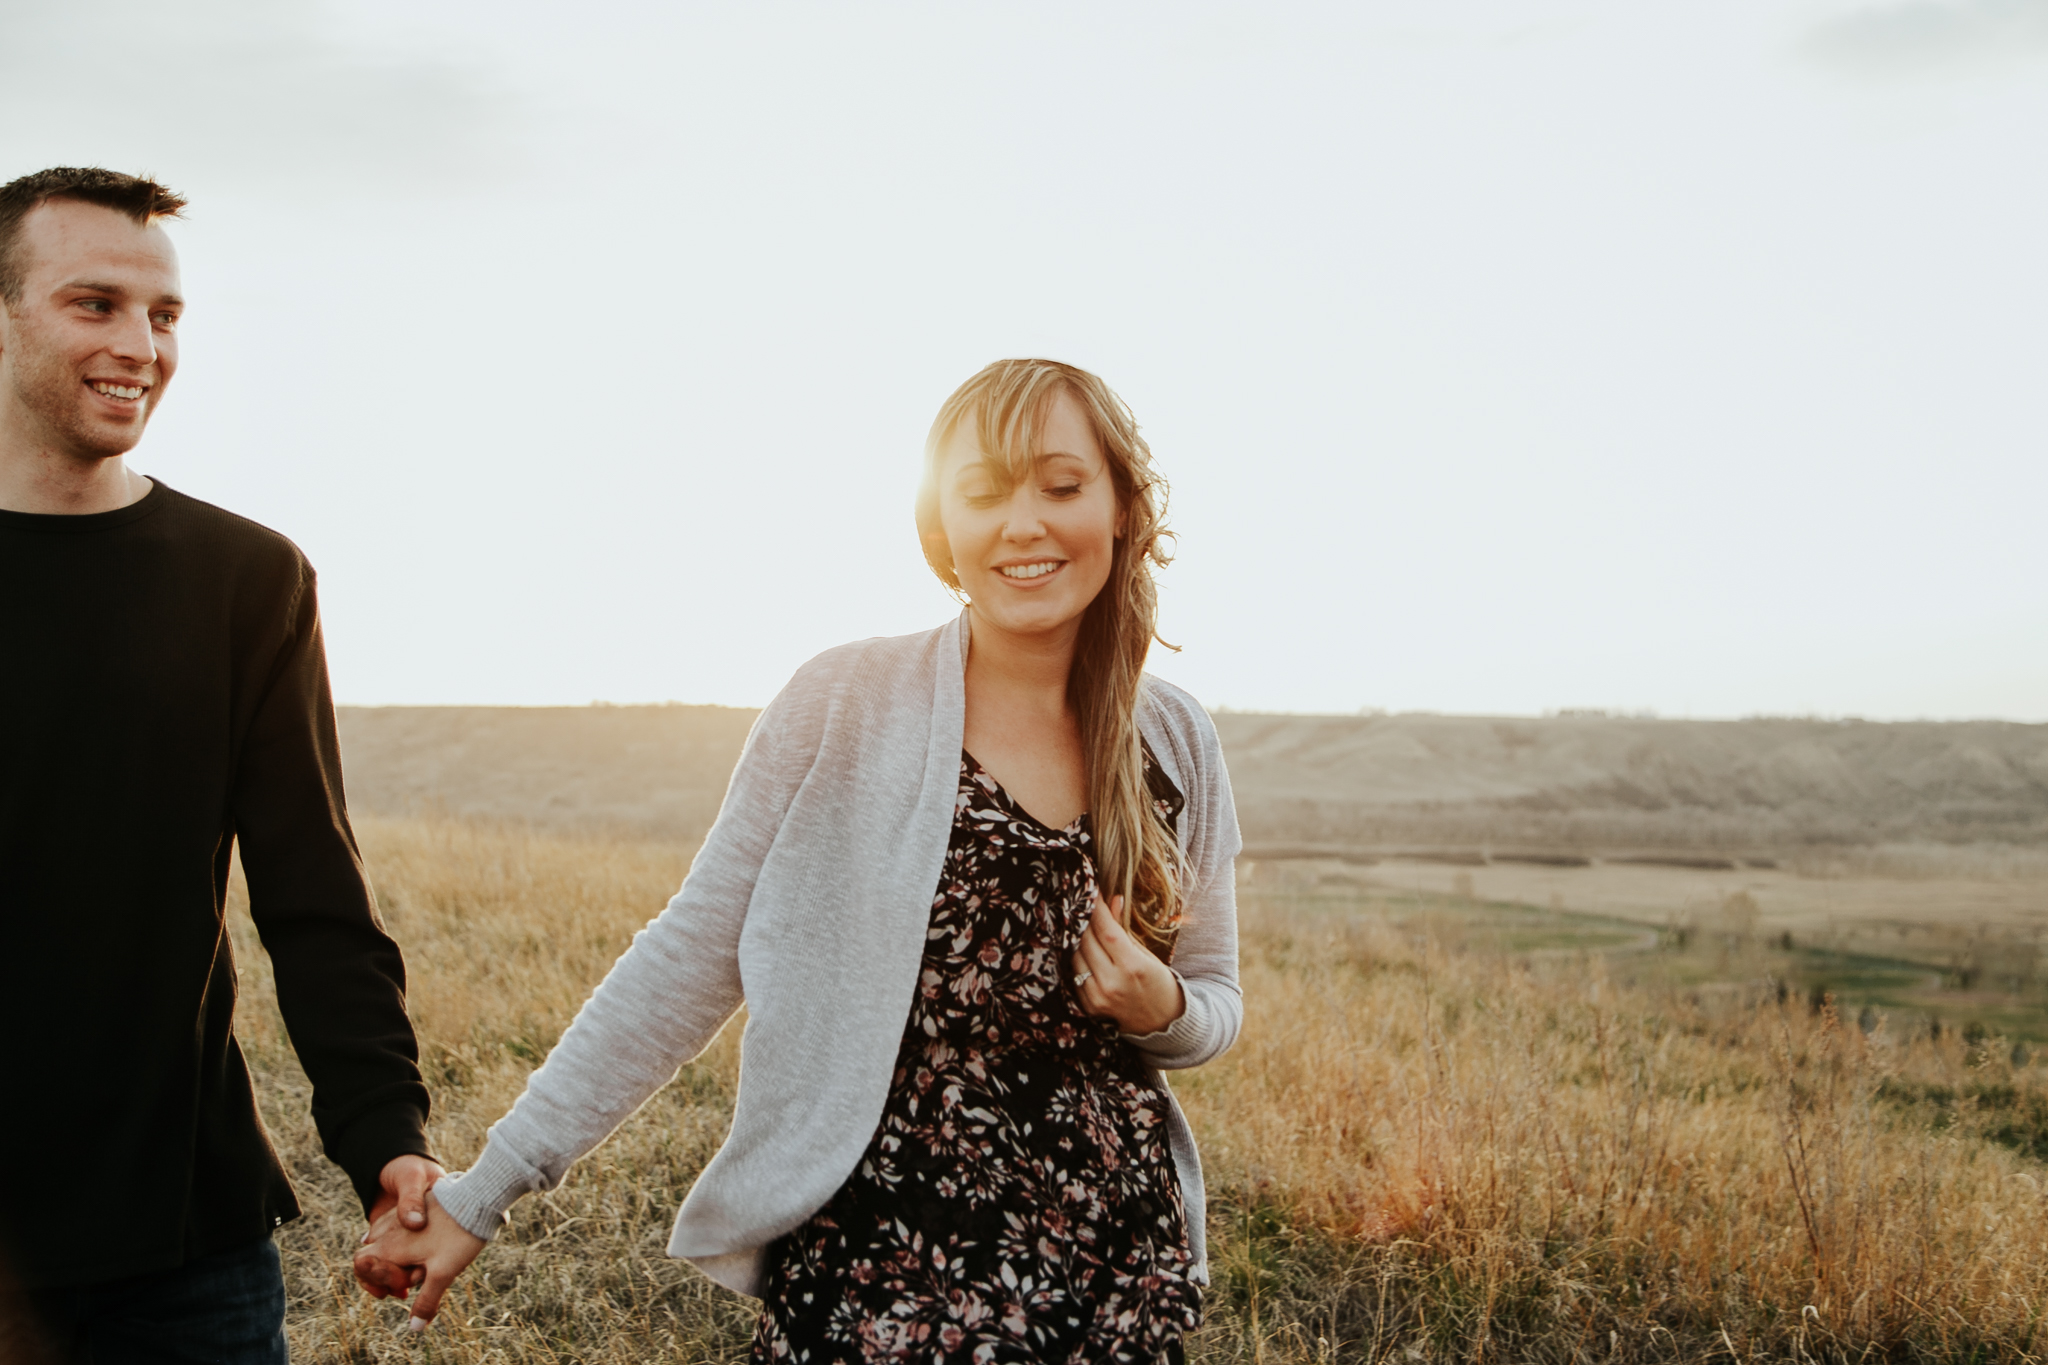 lethbridge-photographer-love-and-be-loved-photography-jessica-john-engagement-picture-image-photo-4.jpg